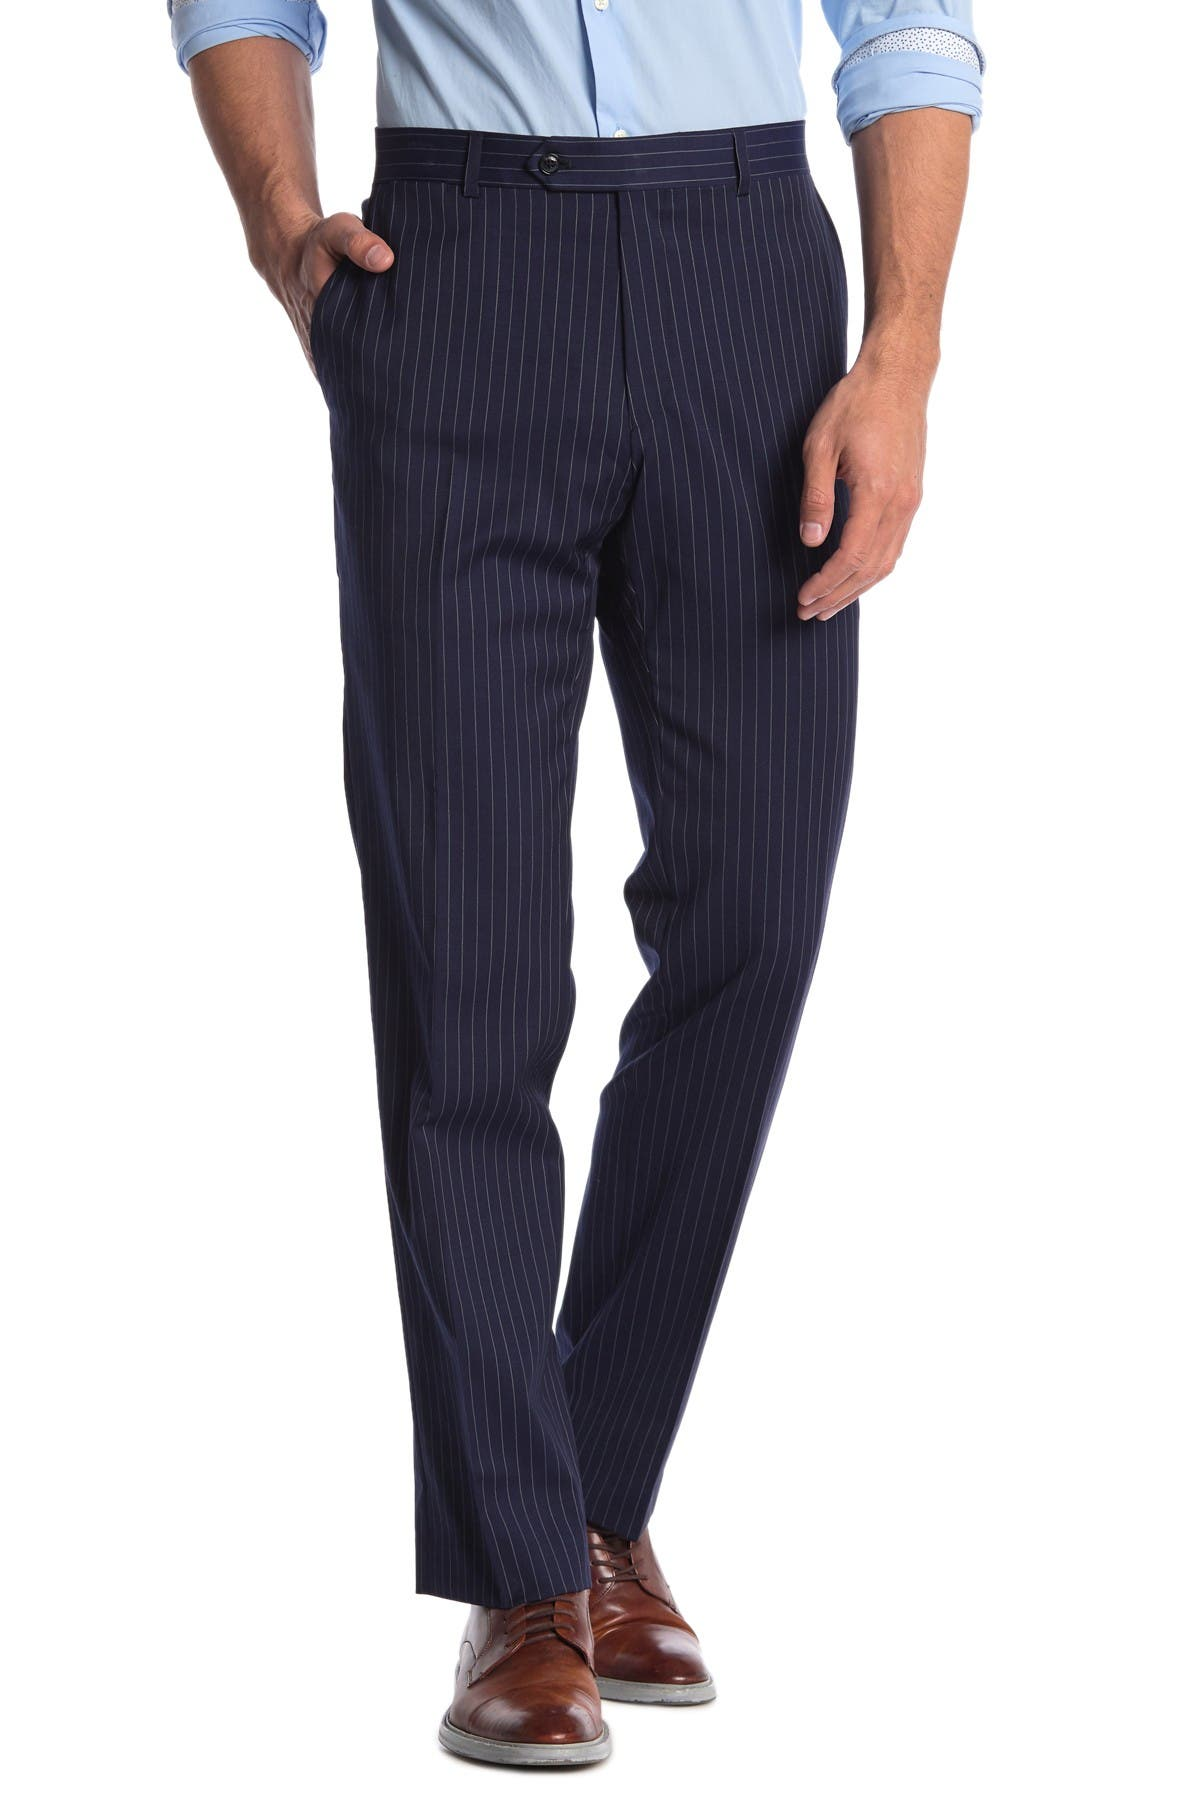 Image of Tommy Hilfiger Slim Fit Pinstripe Wool Blend Suit Seperate Pants